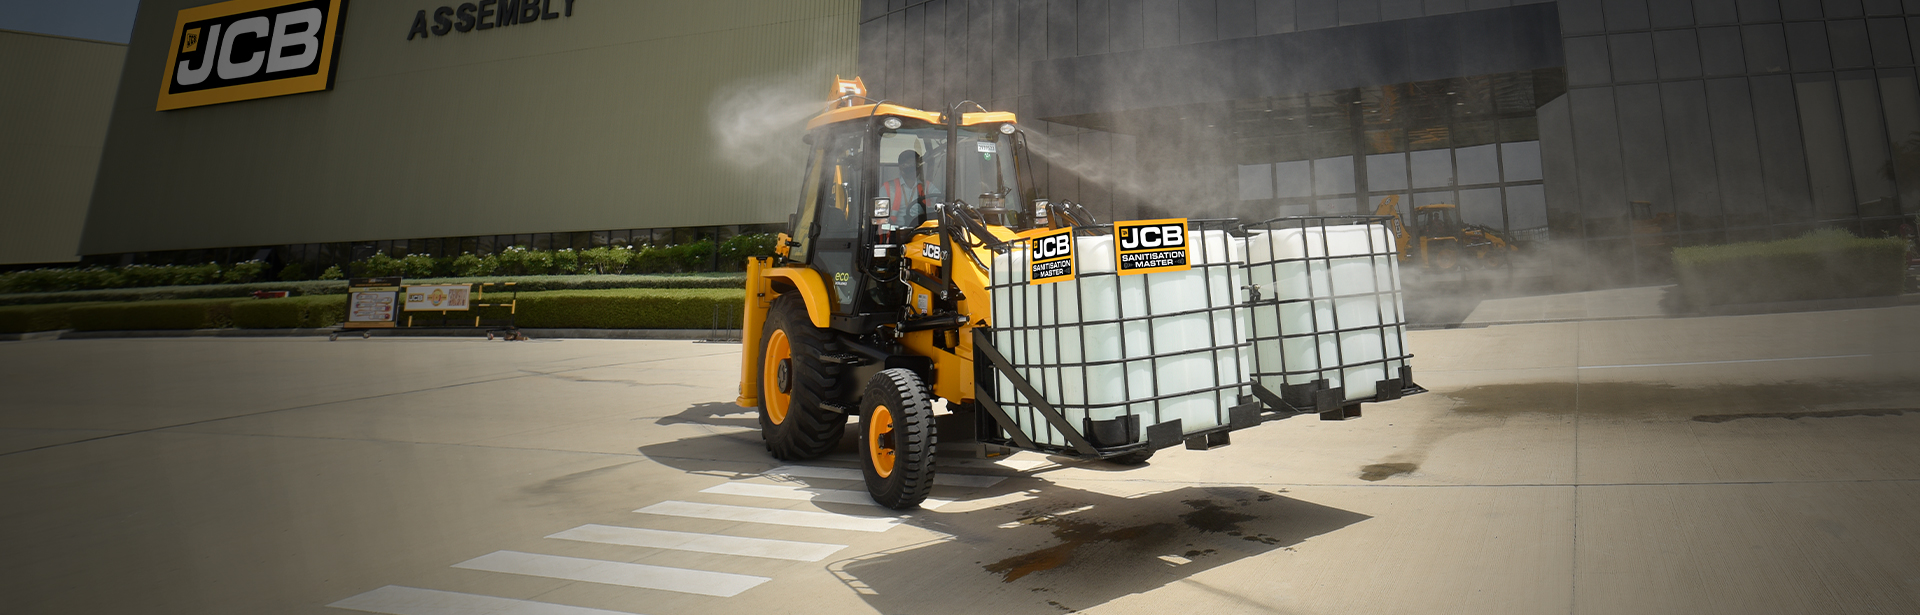 JCB SANITISATION MASTER Calicut Kadoor JCB